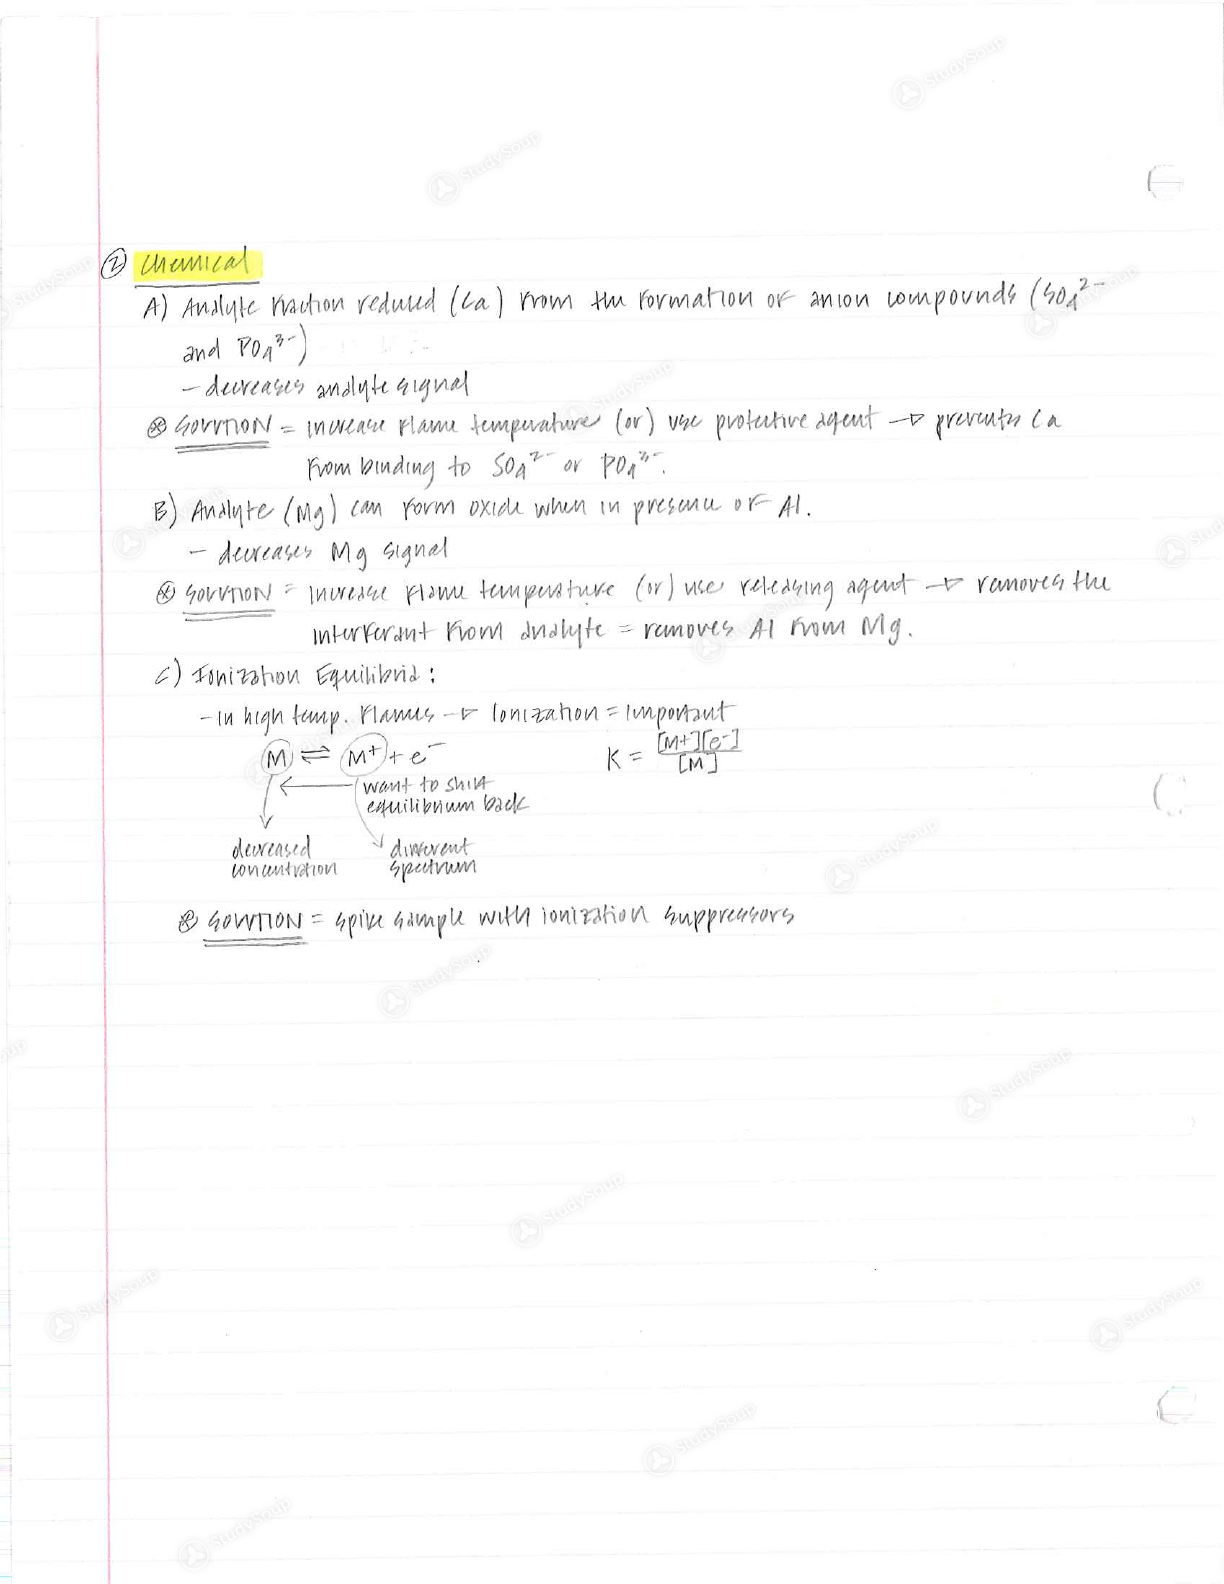 BSU - CHEM 345 - Class Notes - Week 3